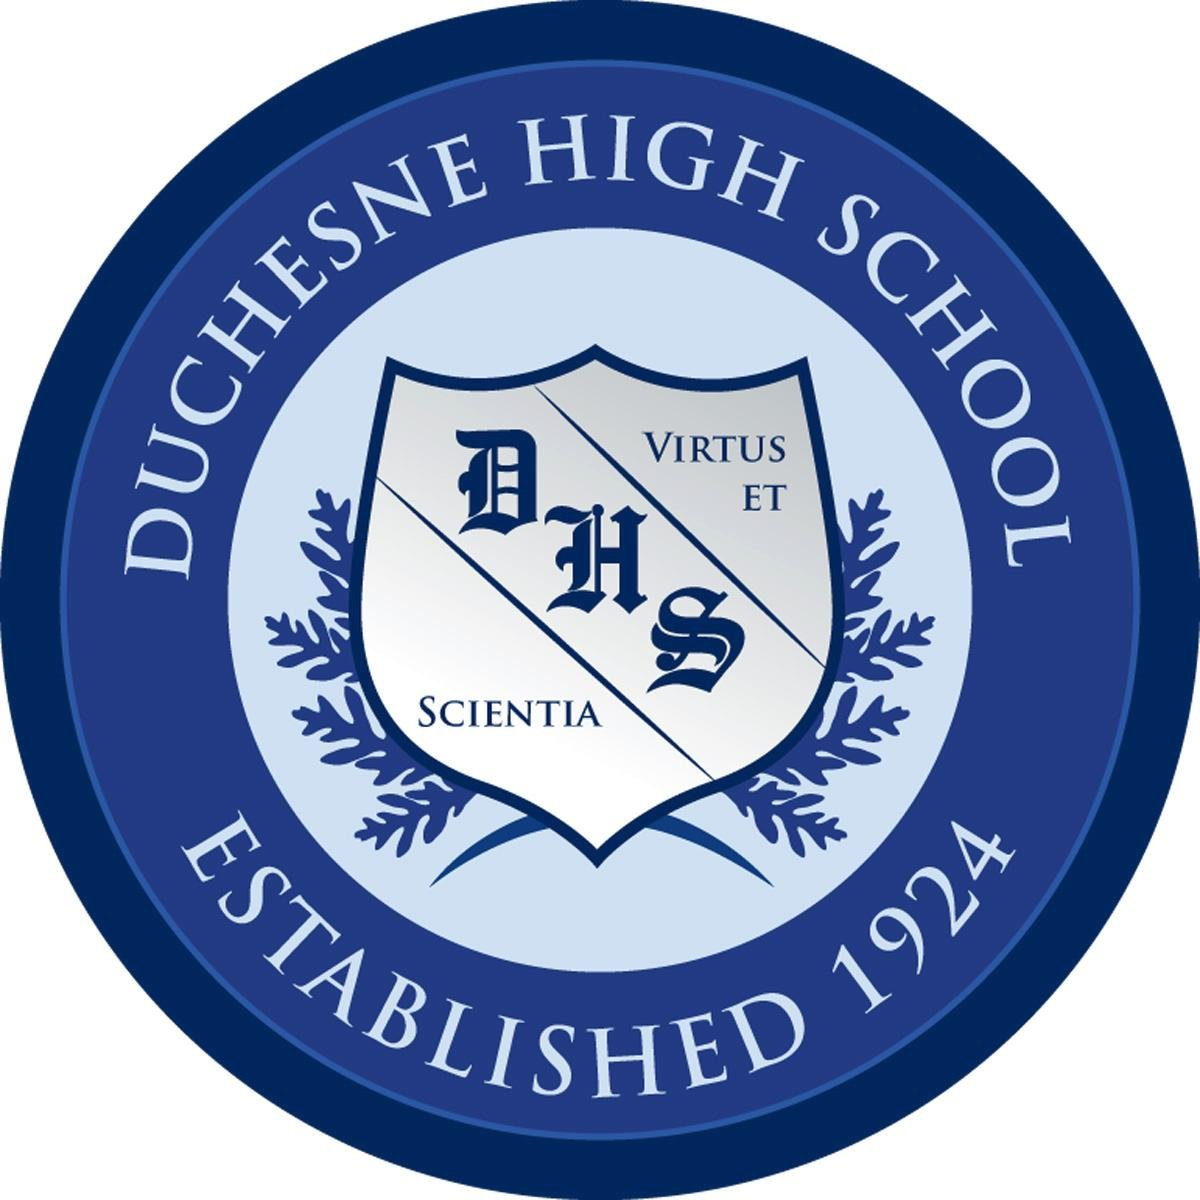 Duchesne High School Mo Duchesne High School Duchesnehs Twitter